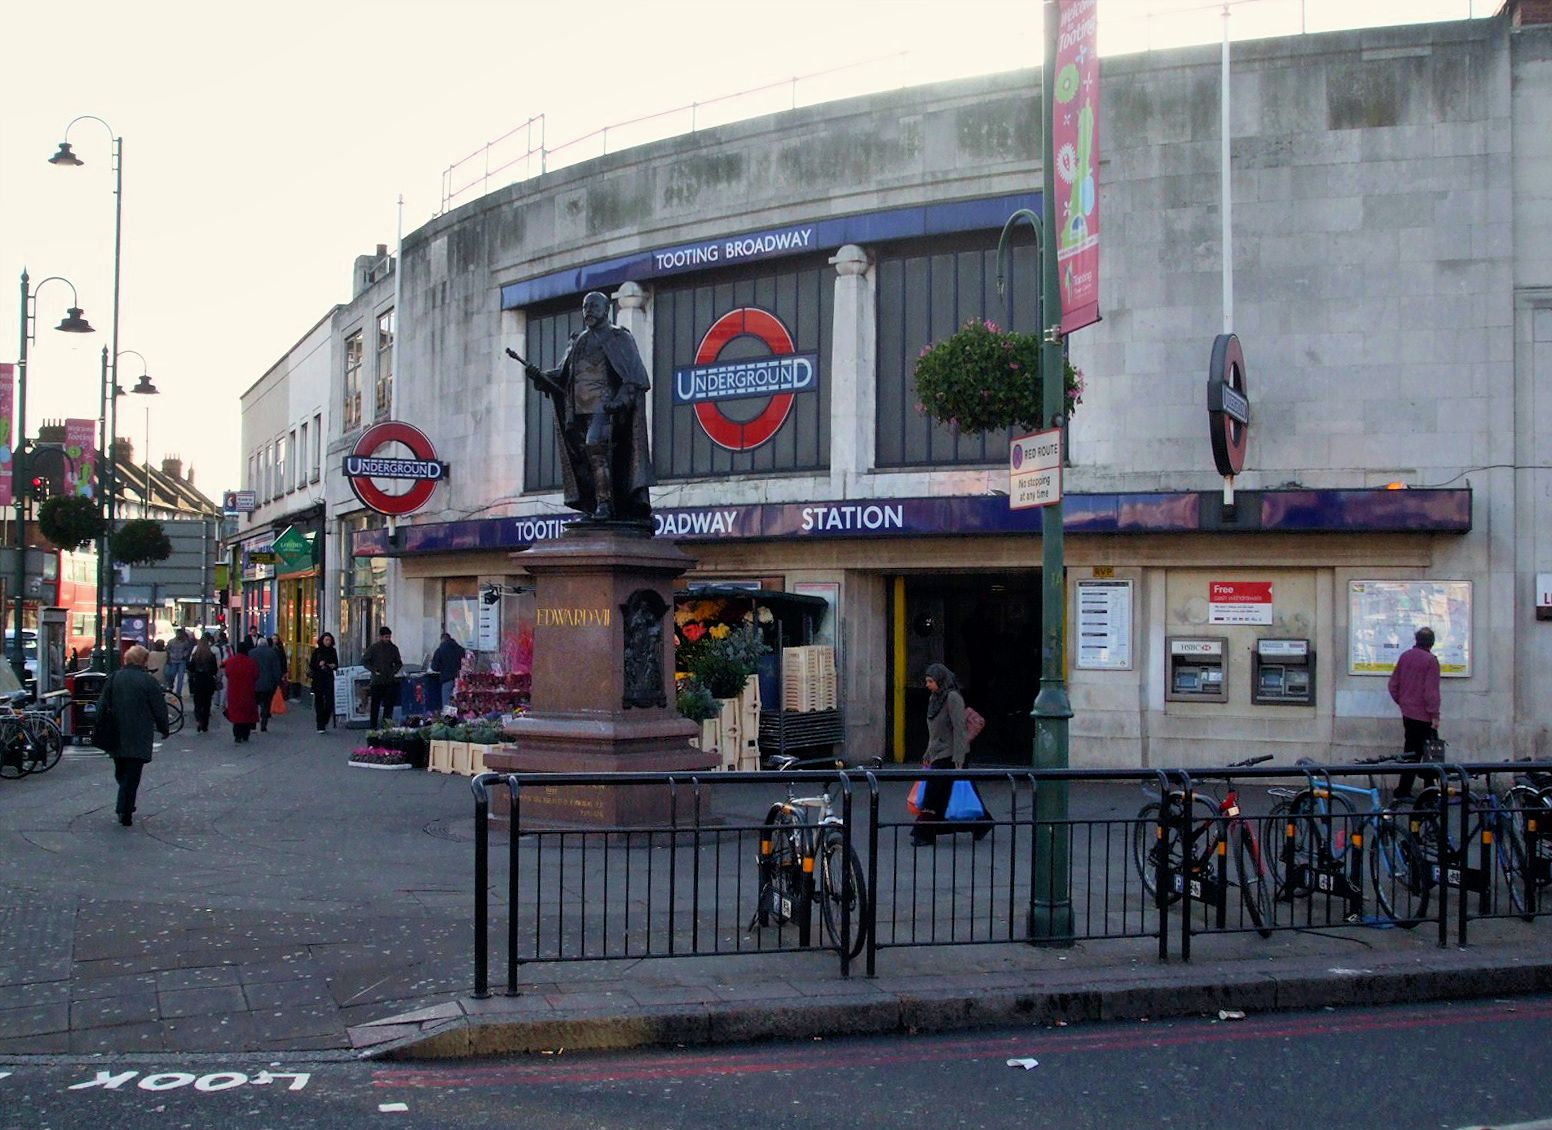 Tooting Broadway tube station